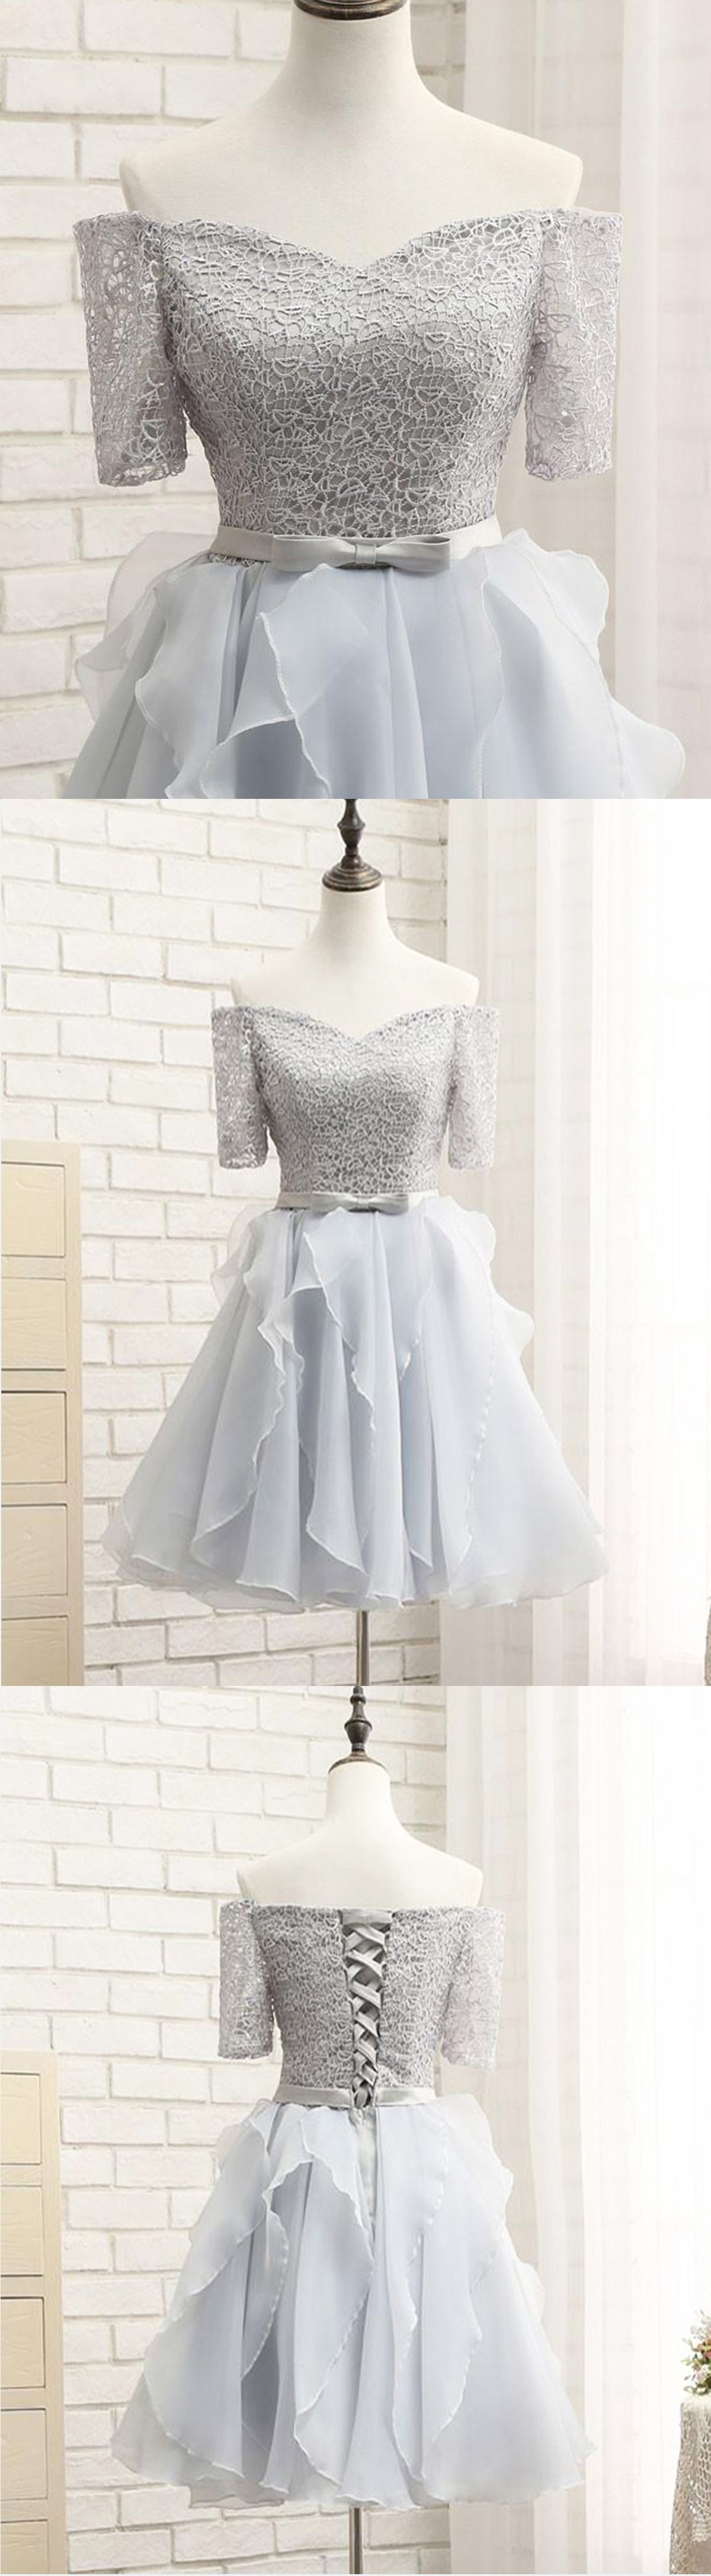 new design gray tulle prom dress mid sleeve party dress short